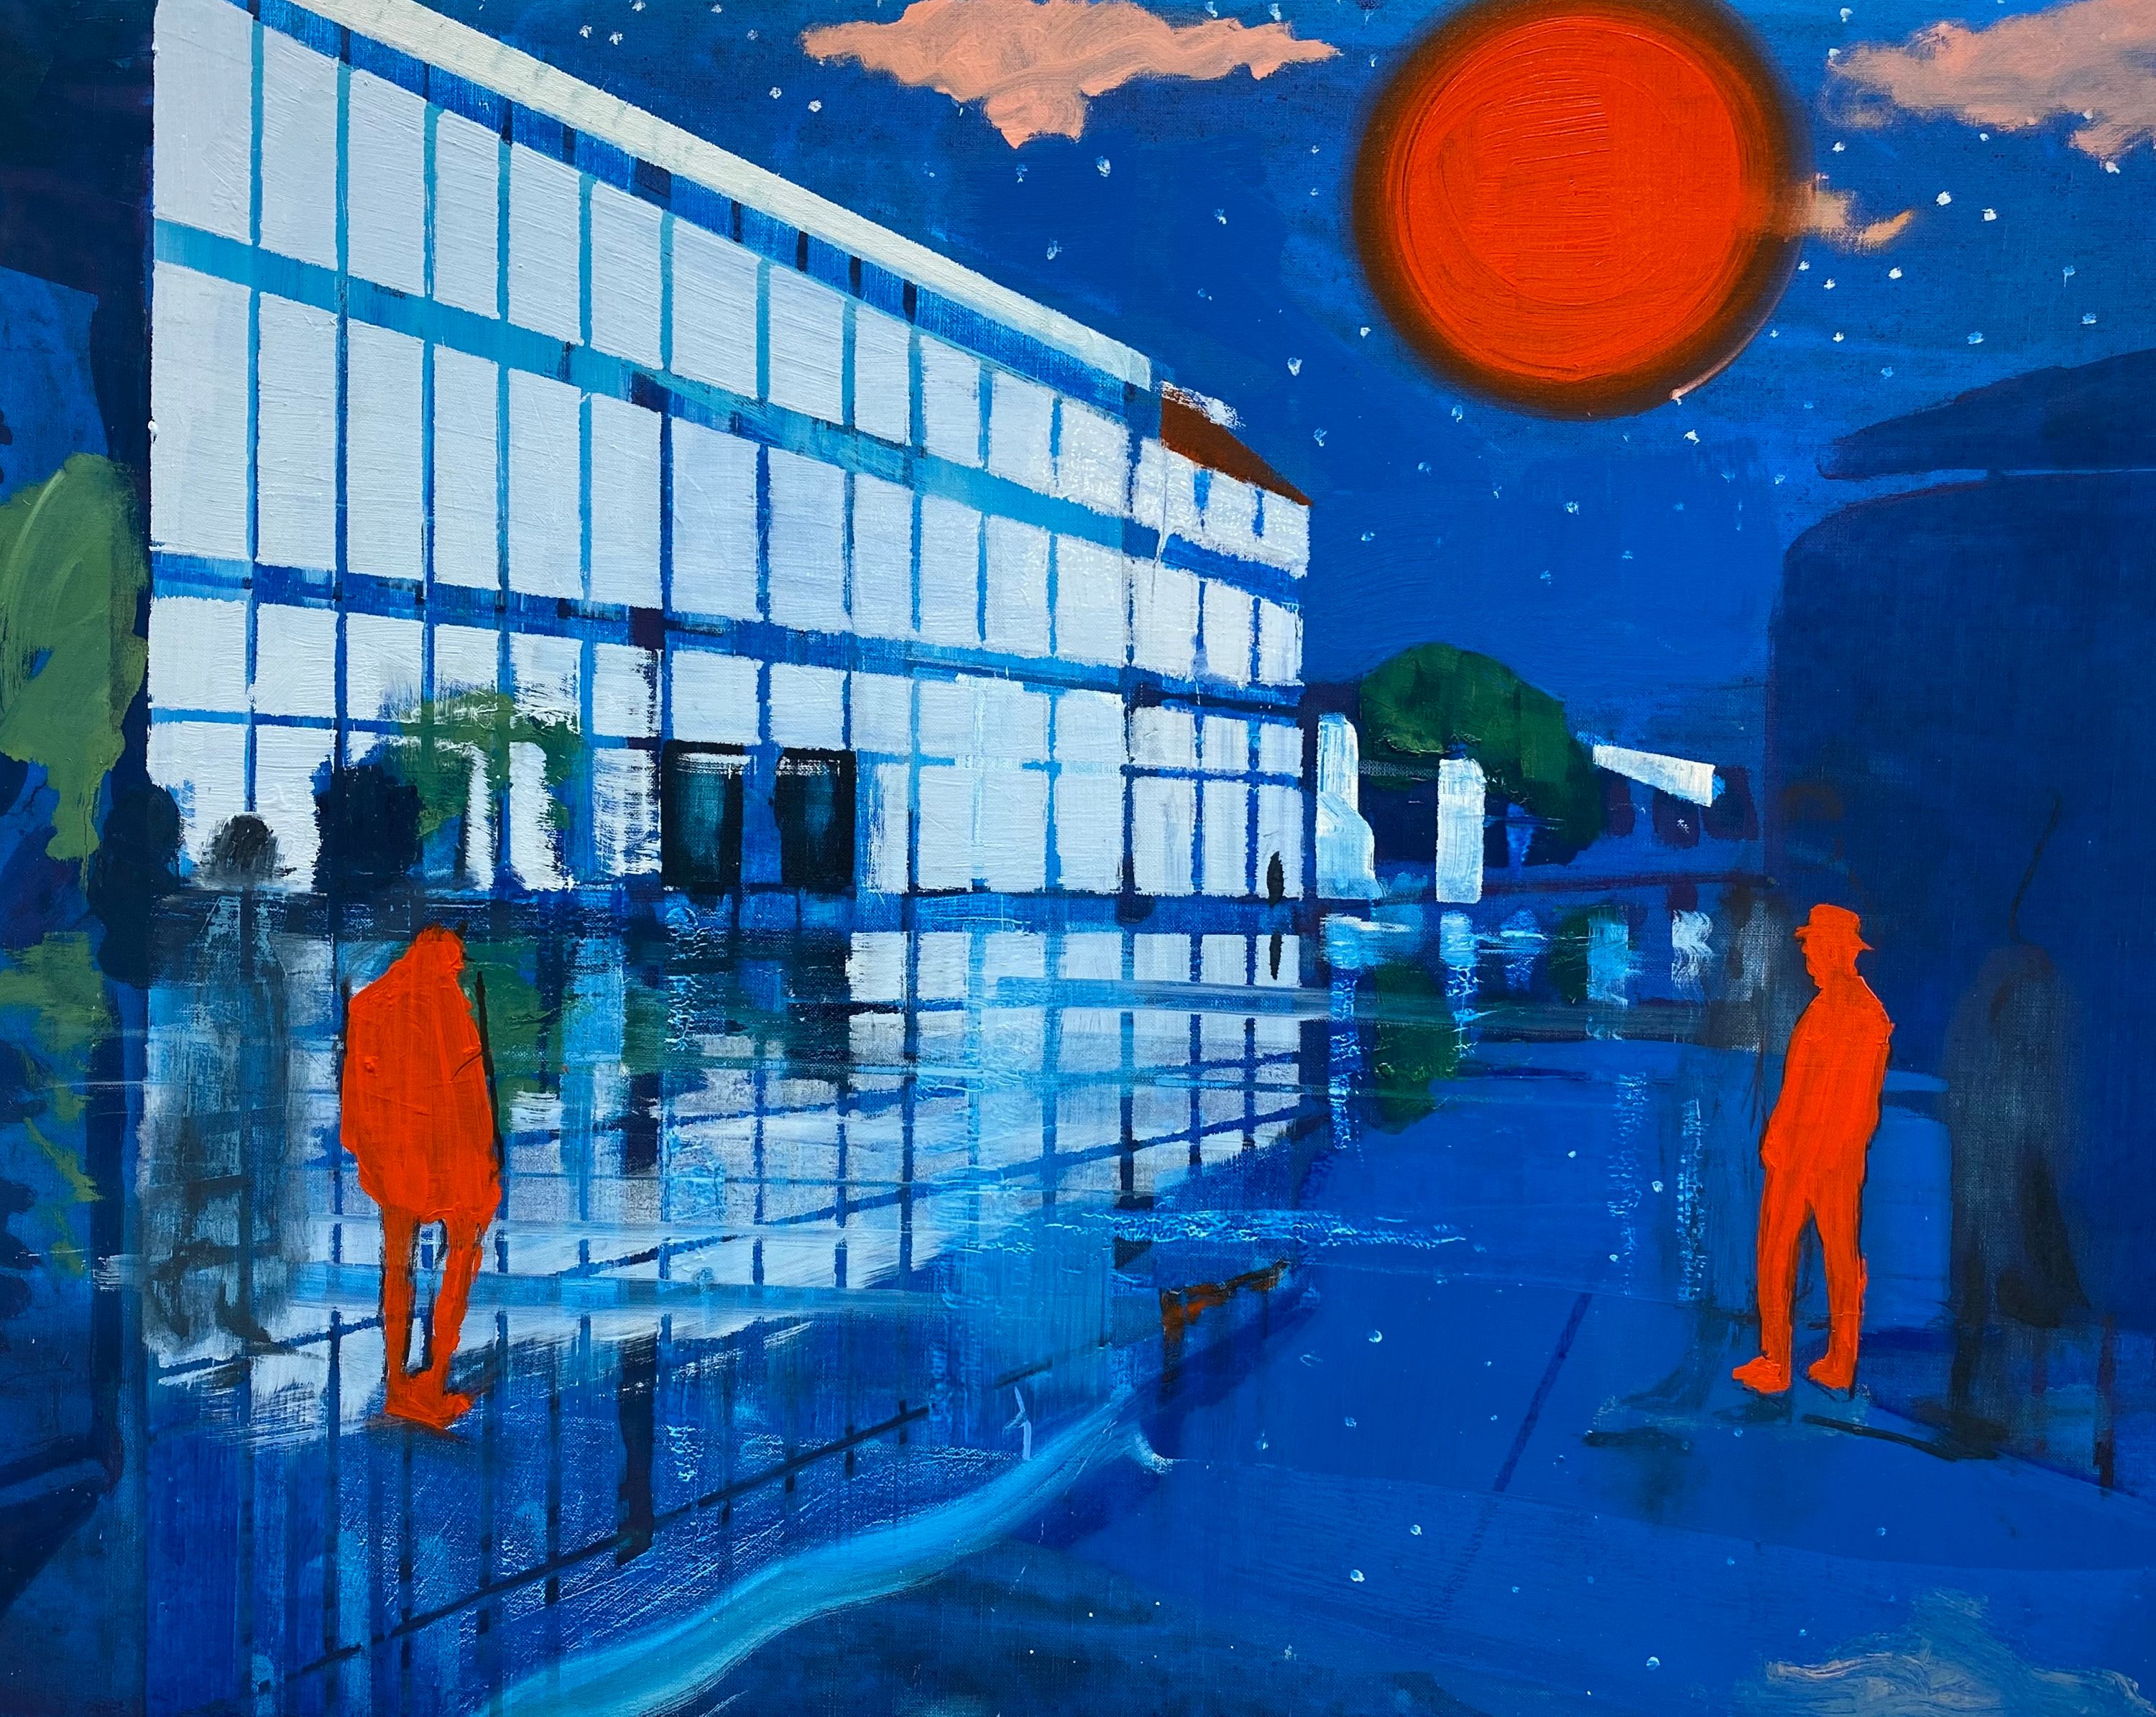 Red Sun by Kenneth Blom, Luisa Catucci Gallery